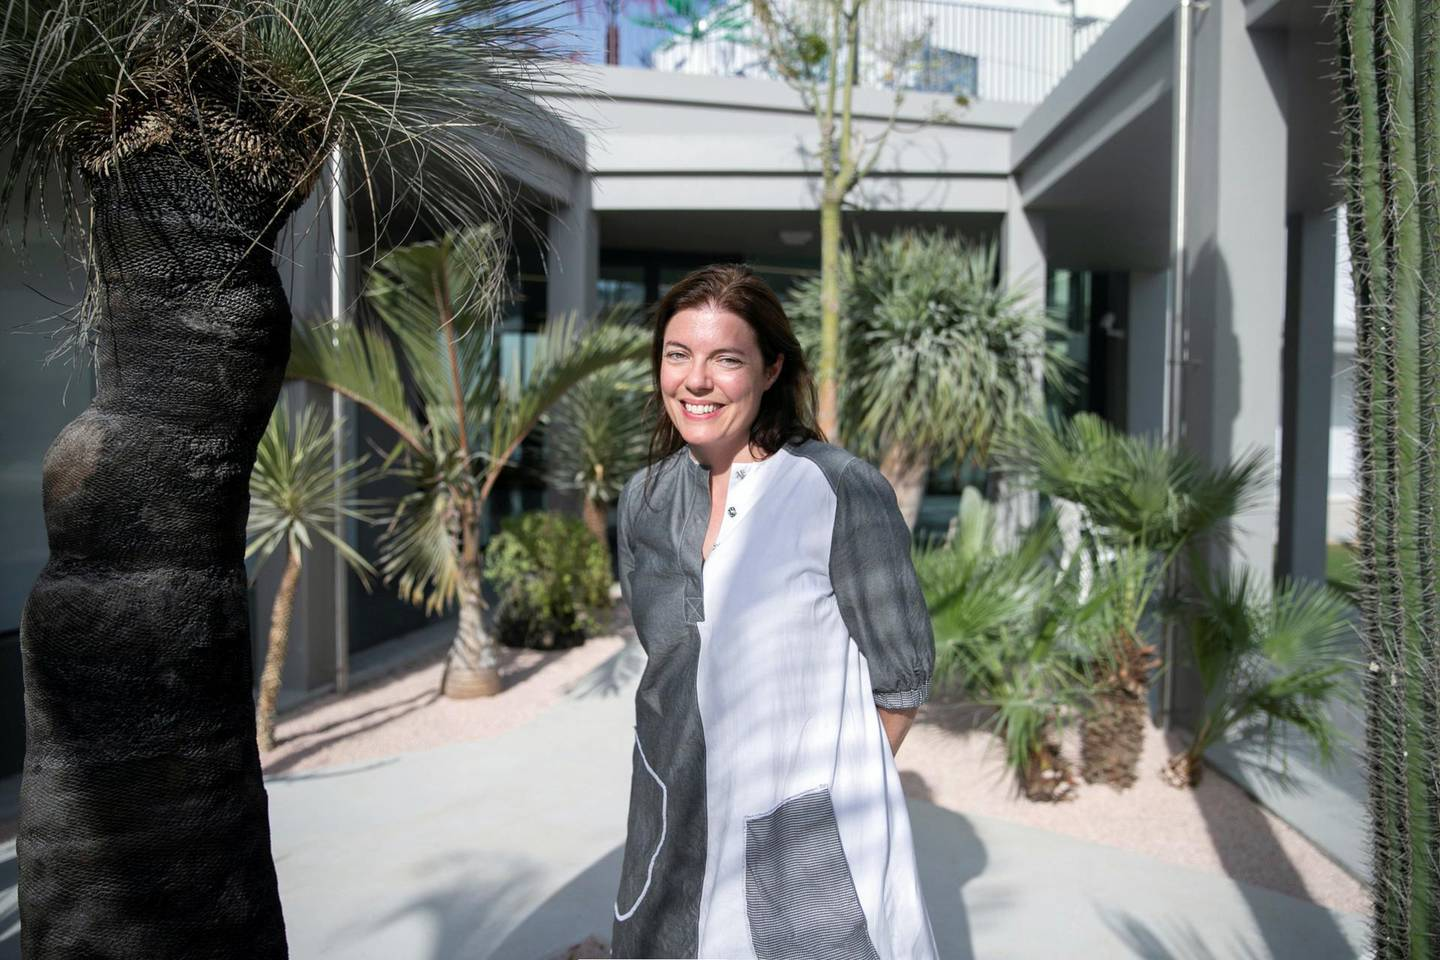 DUBAI, UNITED ARAB EMIRATES - NOVEMBER 7, 2018.   Antonia Carver, Director of Art Jameel.  The Jameel Arts Center is set to open on November 11, Located at the Jaddaf Waterfront,  the multidisciplinary space is dedicated to exhibiting contemporary art and engaging communities through learning, research and commissions. It houses several gallery spaces, an open access library and research centre, project and commissions spaces, a writer's studio, indoor and outdoor event spaces, a roof terrace for film screenings and other events, a bookstore dedicated to arts and culture related publications, a café and a full-service restaurant.  The centre is one of the first independent not-for-profit contemporary arts institutions in the city. It is founded and supported by Art Jameel, an independent organisation that fosters contemporary art practice, cultural heritage protection, and creative entrepreneurship across the Middle East, North Africa and beyond.  (Photo by Reem Mohammed/The National)  Reporter: MELISSA GRONLUND Section:  AC WK